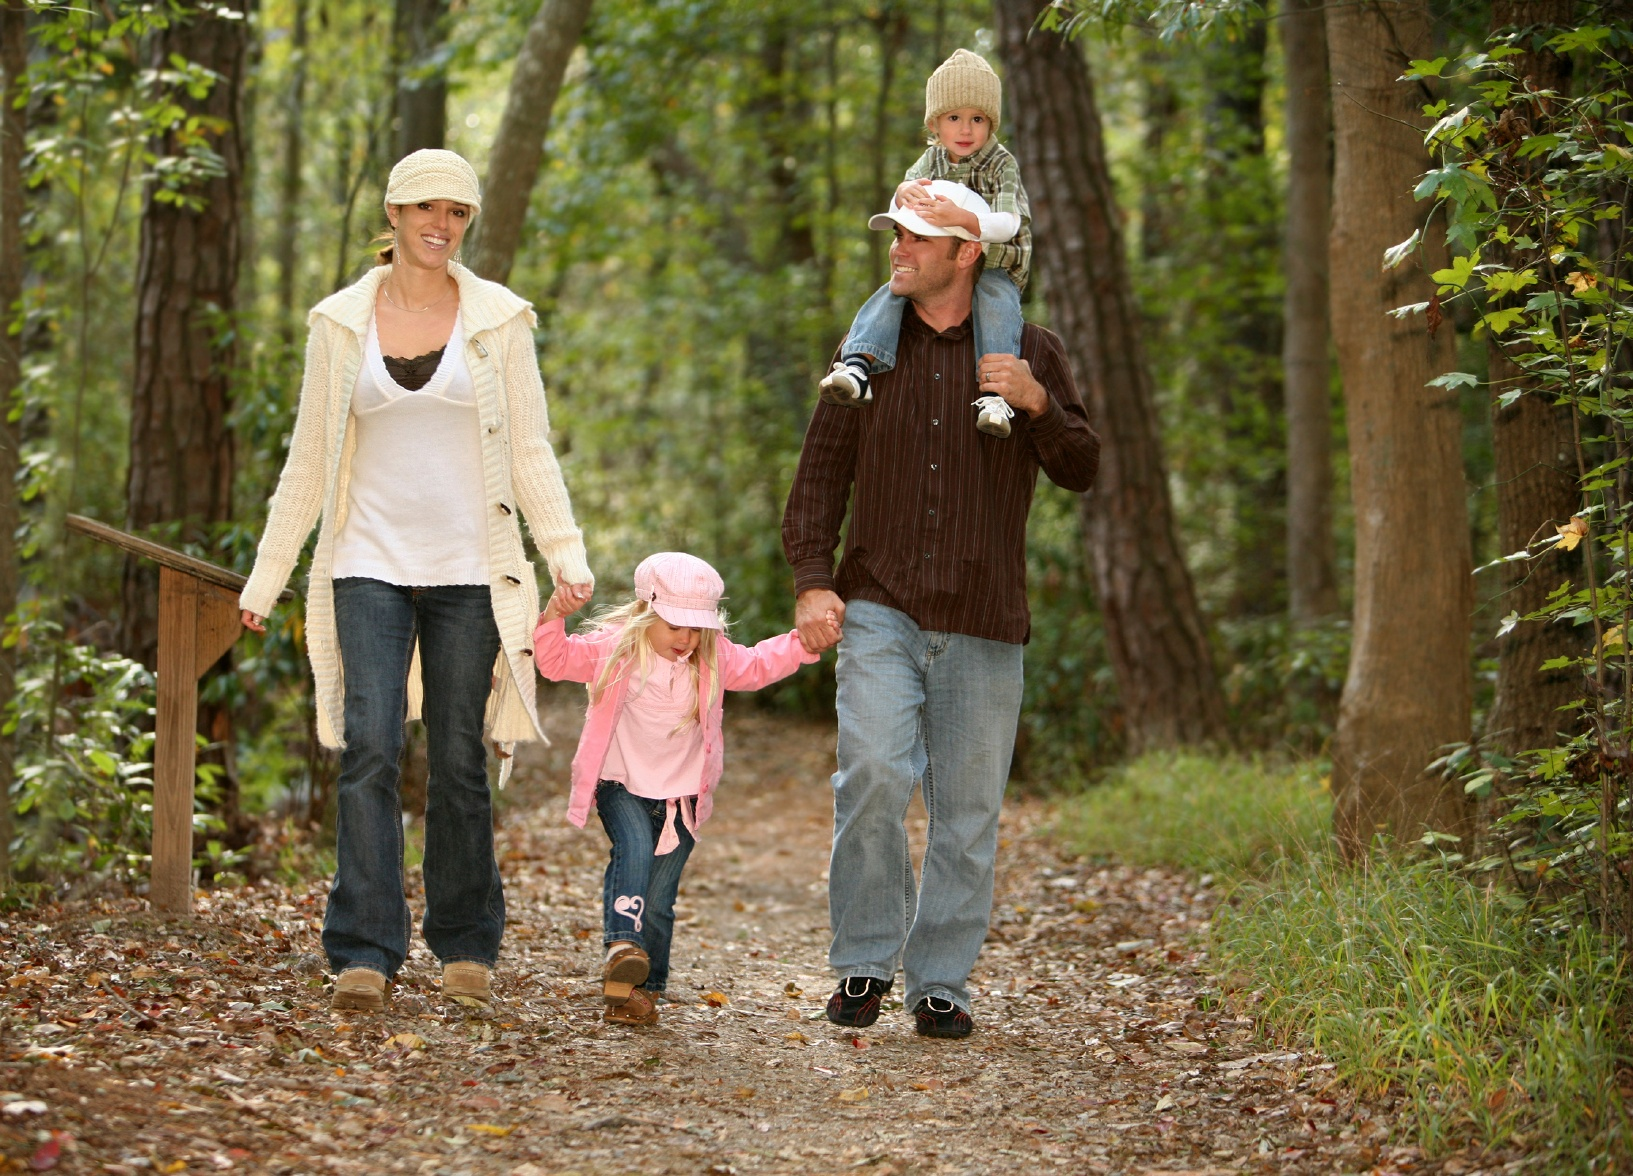 Family_Out_Walking.jpg